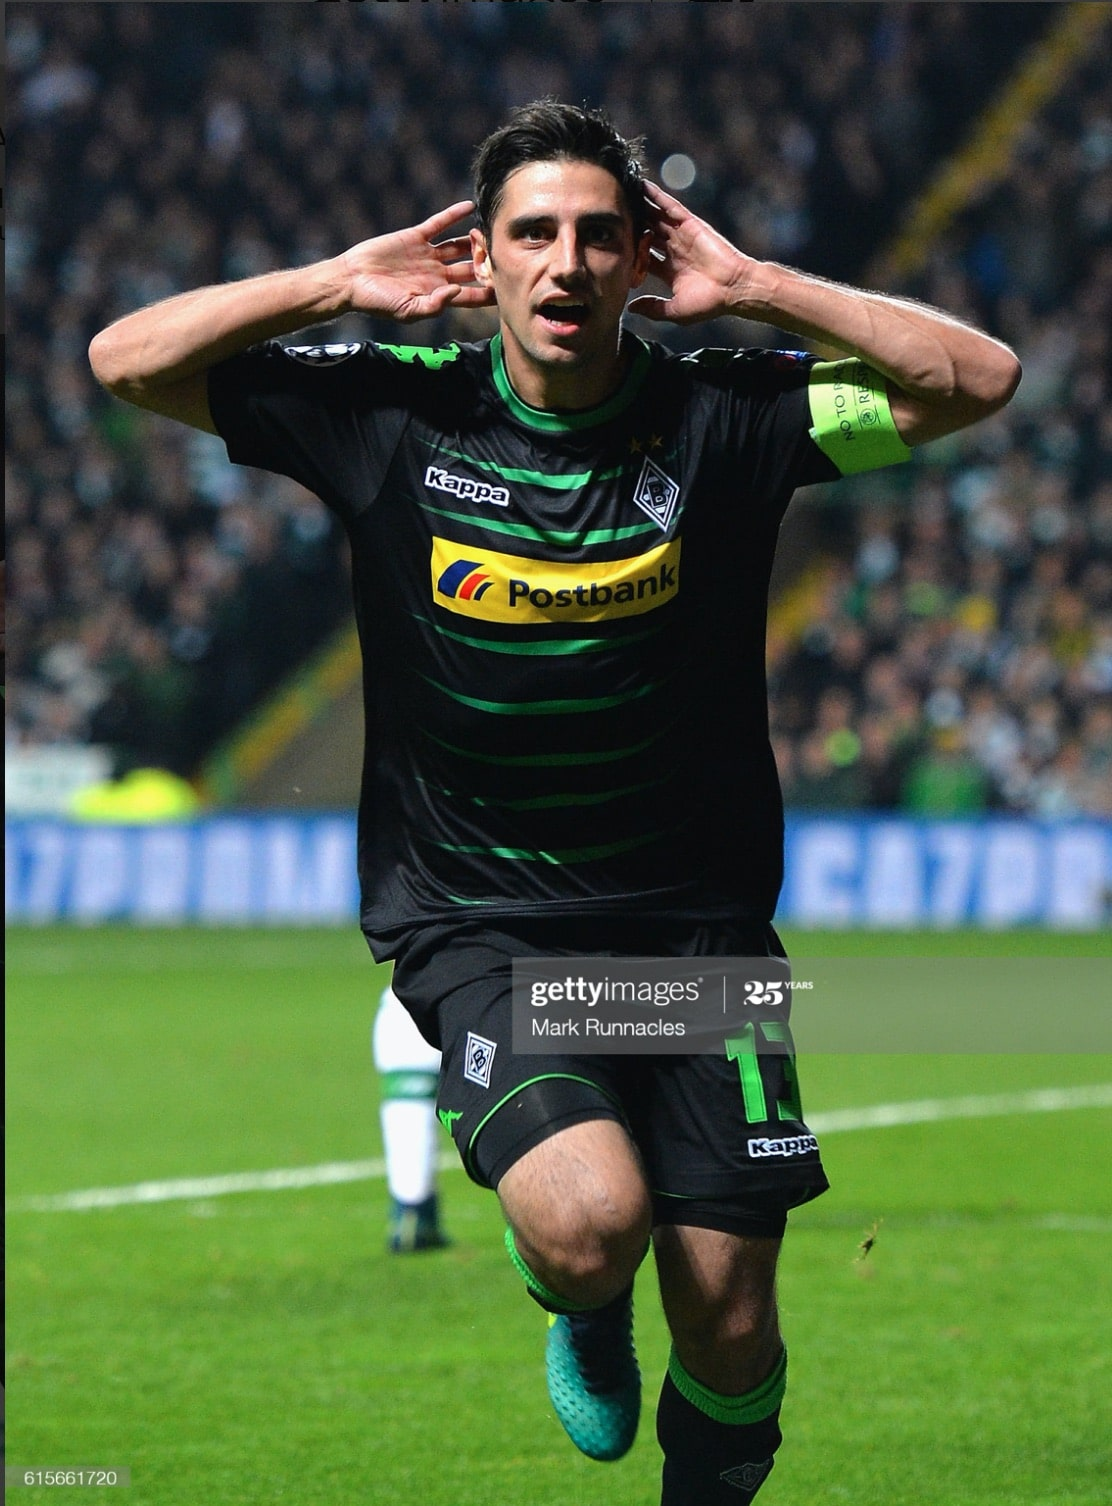 Gladbach's last UCL adventure was back in 2016 (Photo by Mark Runnacles via Gettyimages)